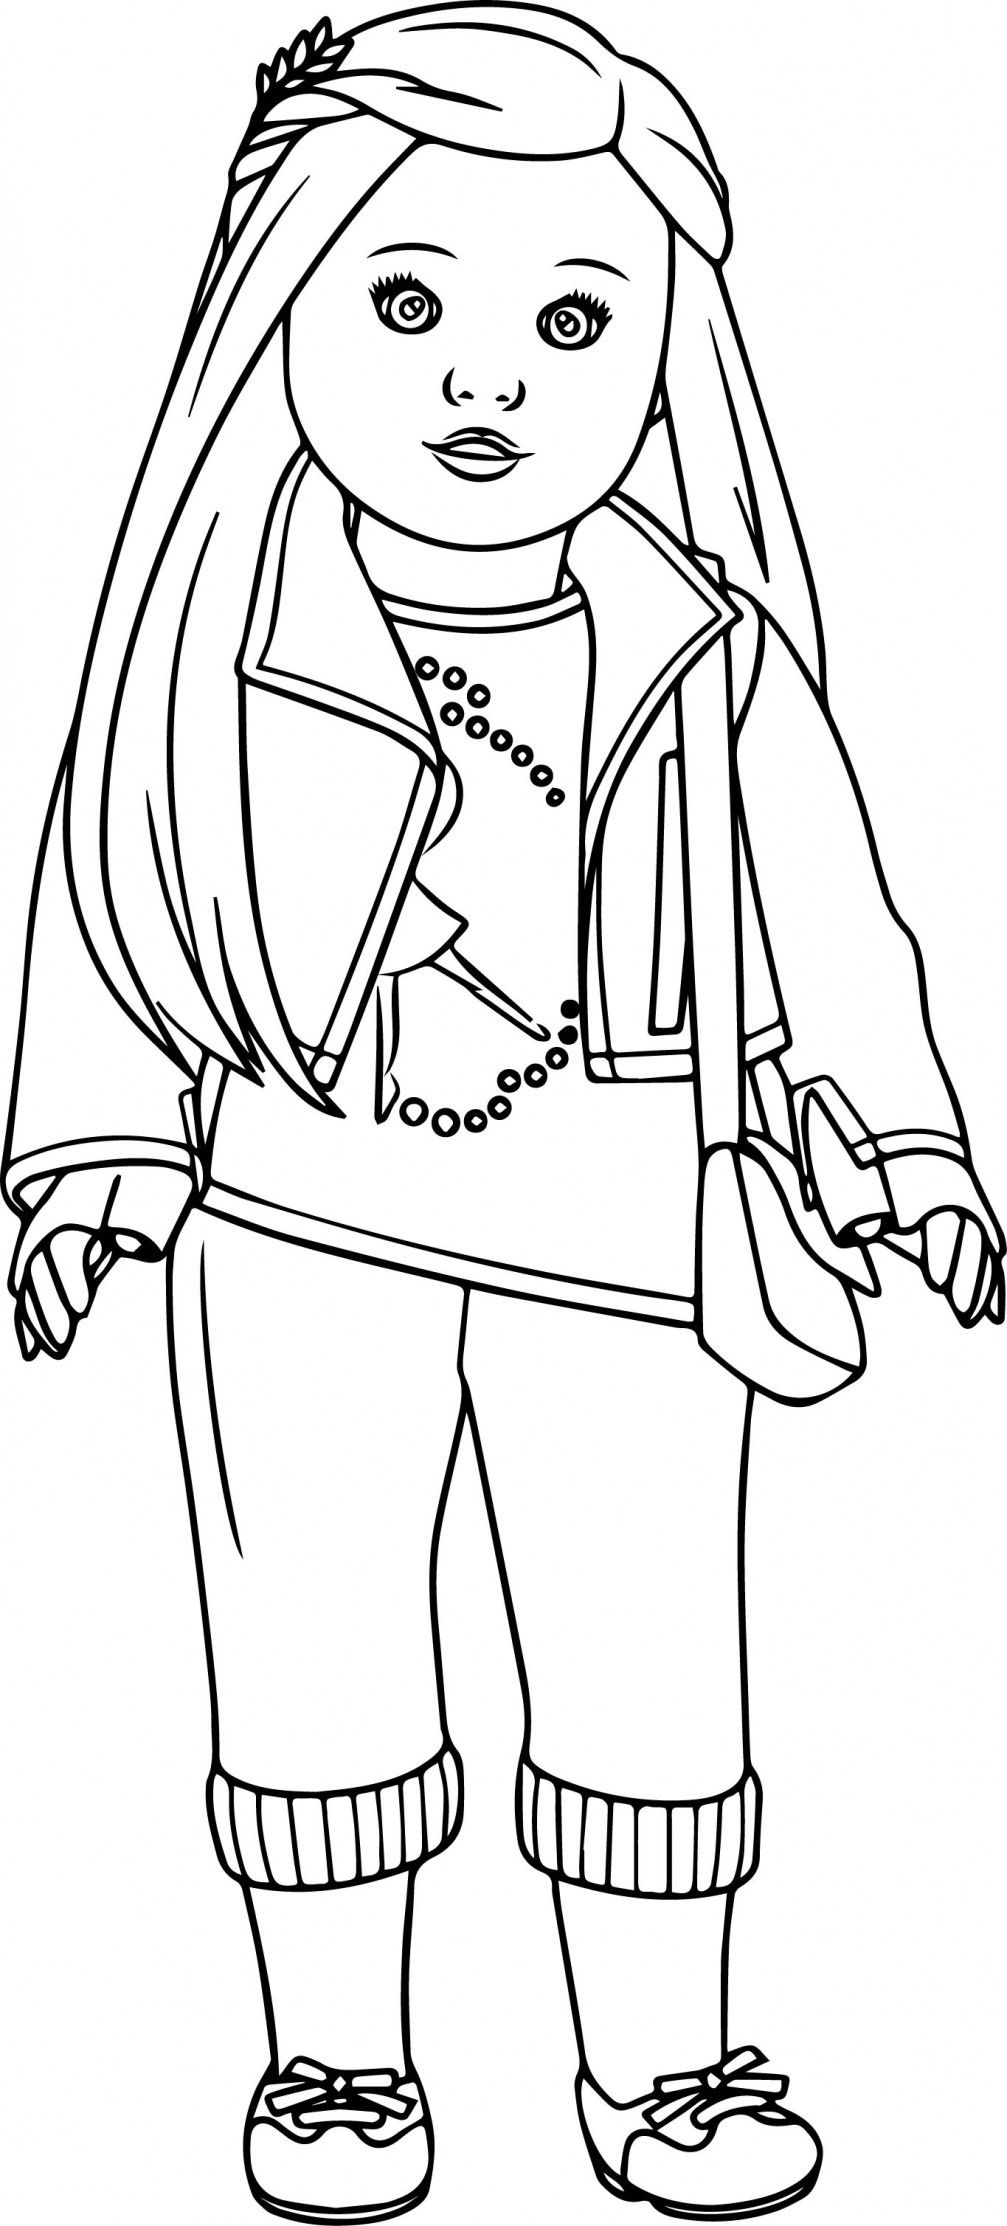 coloring picture of girl girly coloring pages printable at getcoloringscom free girl picture coloring of